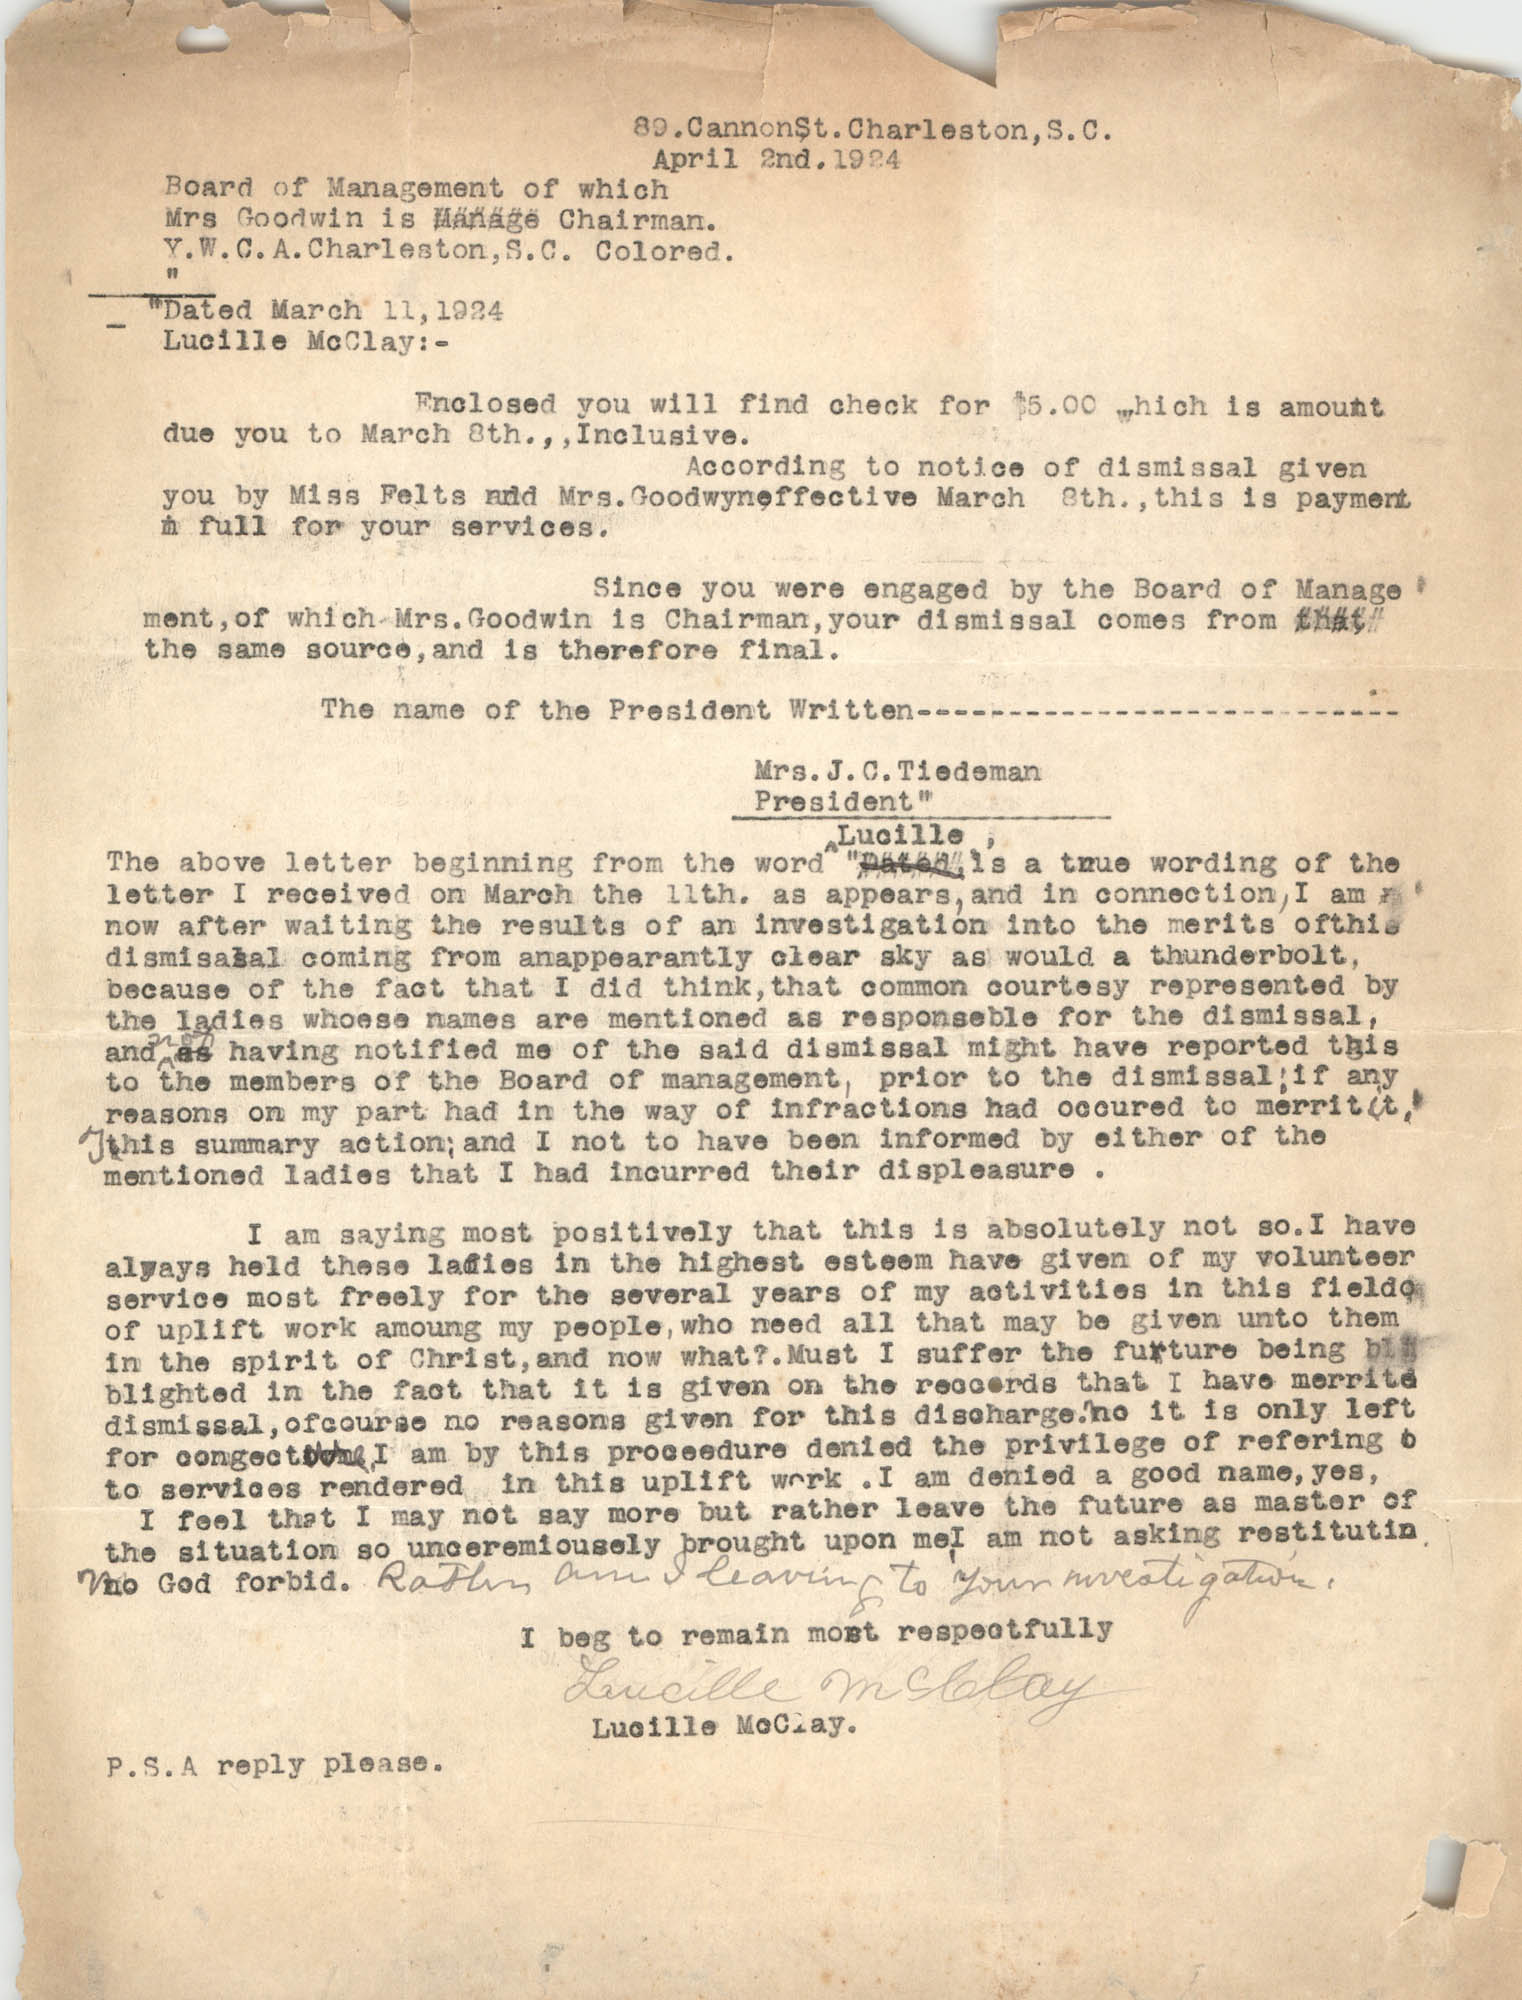 Letter from Coming Street Y.W.C.A., April 2, 1924